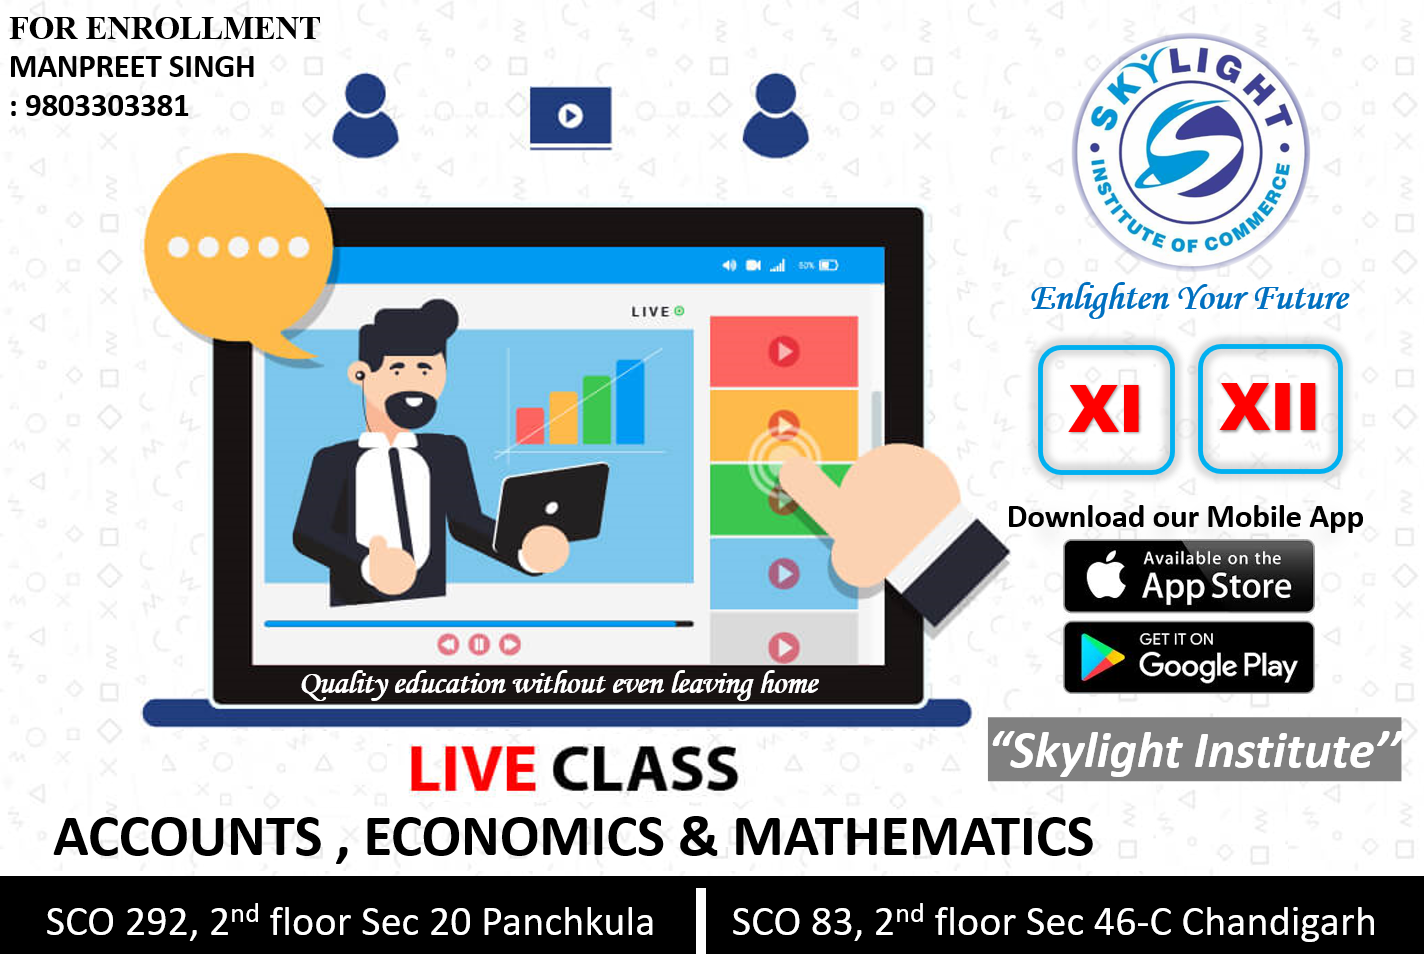 Online Classes for 11th and 12th Commerce | SKYLIGHT INSTITUTE OF COMMERCE | online classes for Commerce - GL66301